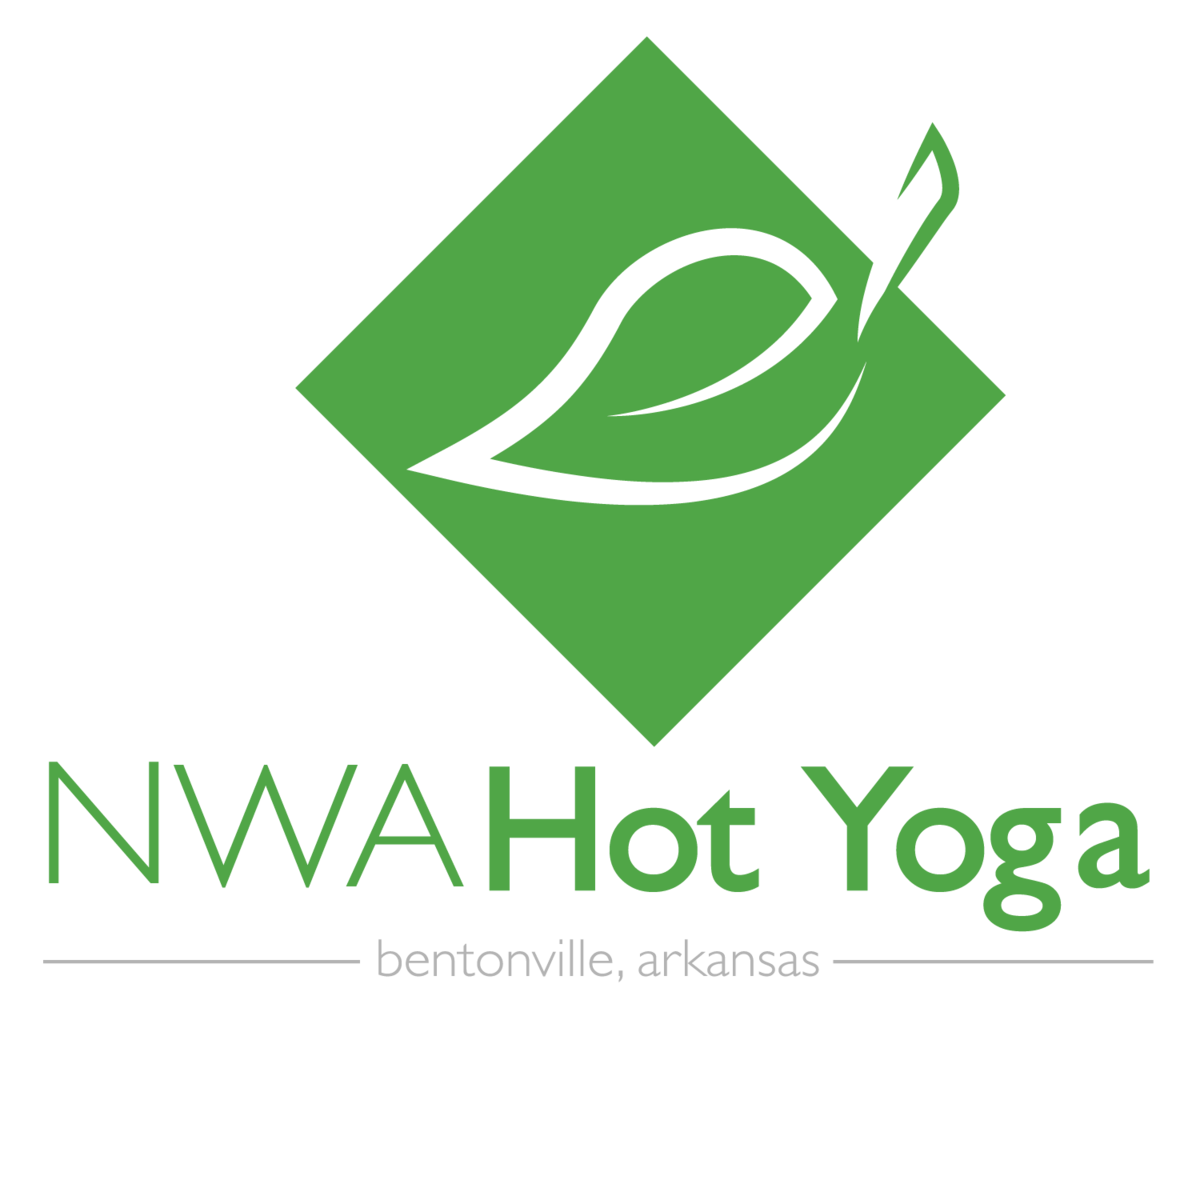 NWA Hot Yoga